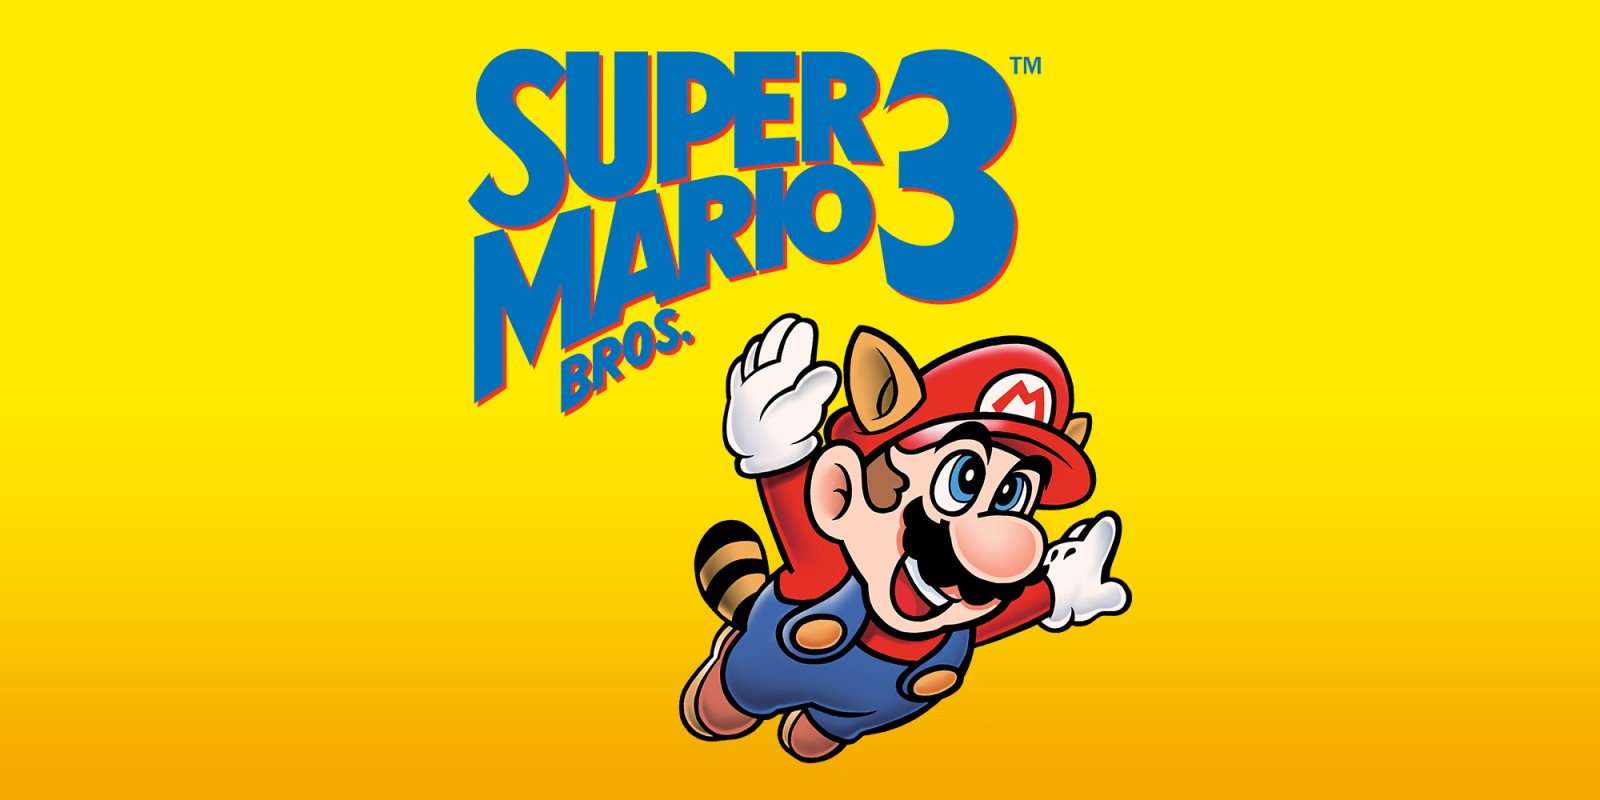 Super mario bros 3 in 1 java game for mobile. Super mario bros 3.